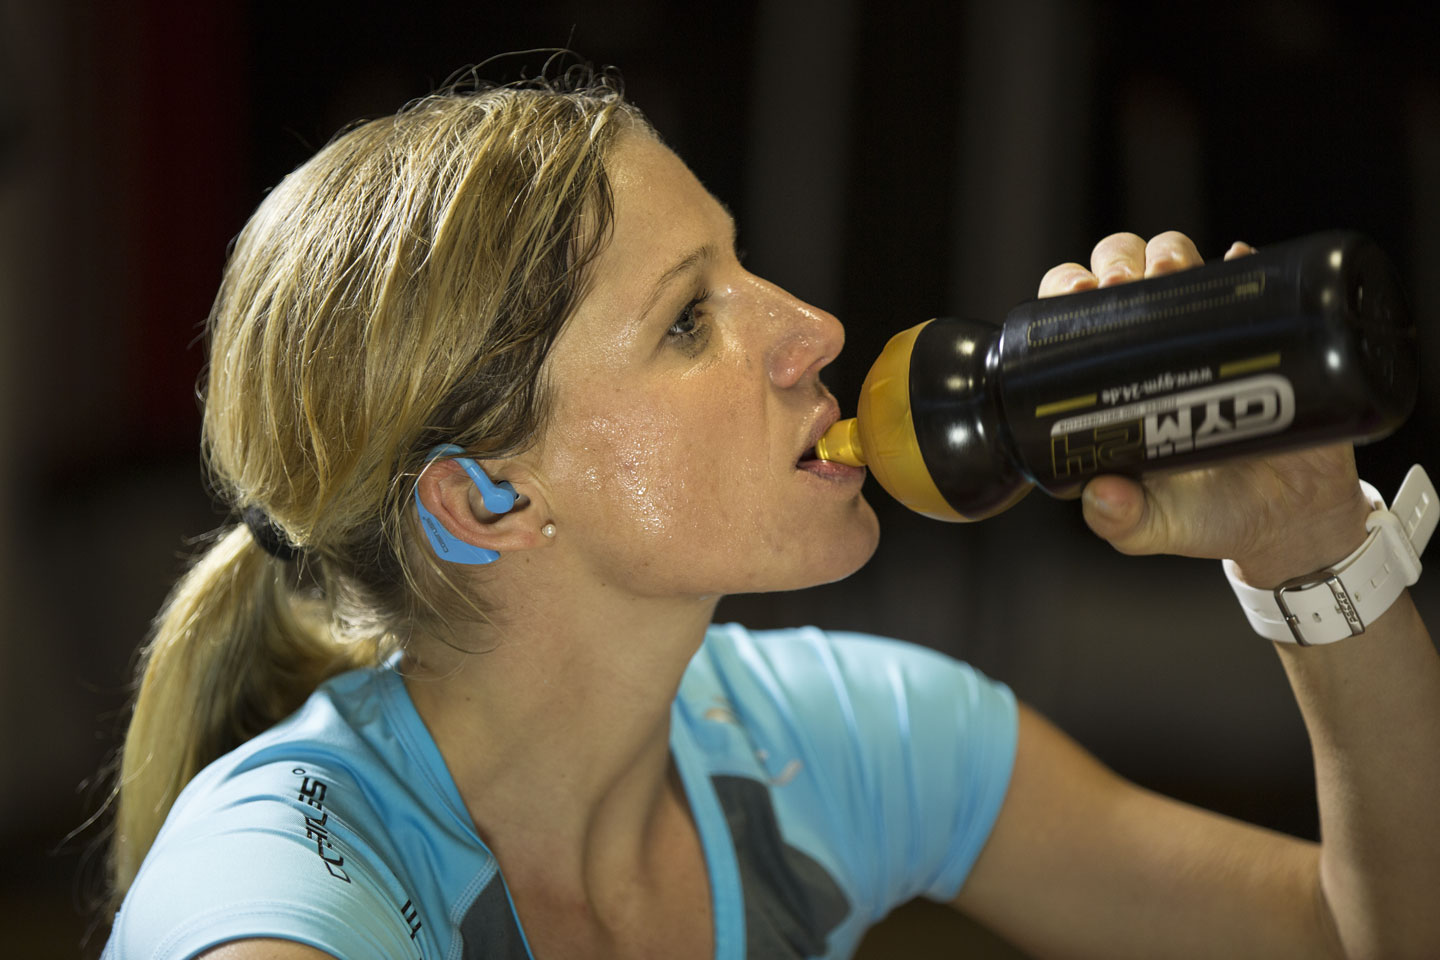 Drinking during training